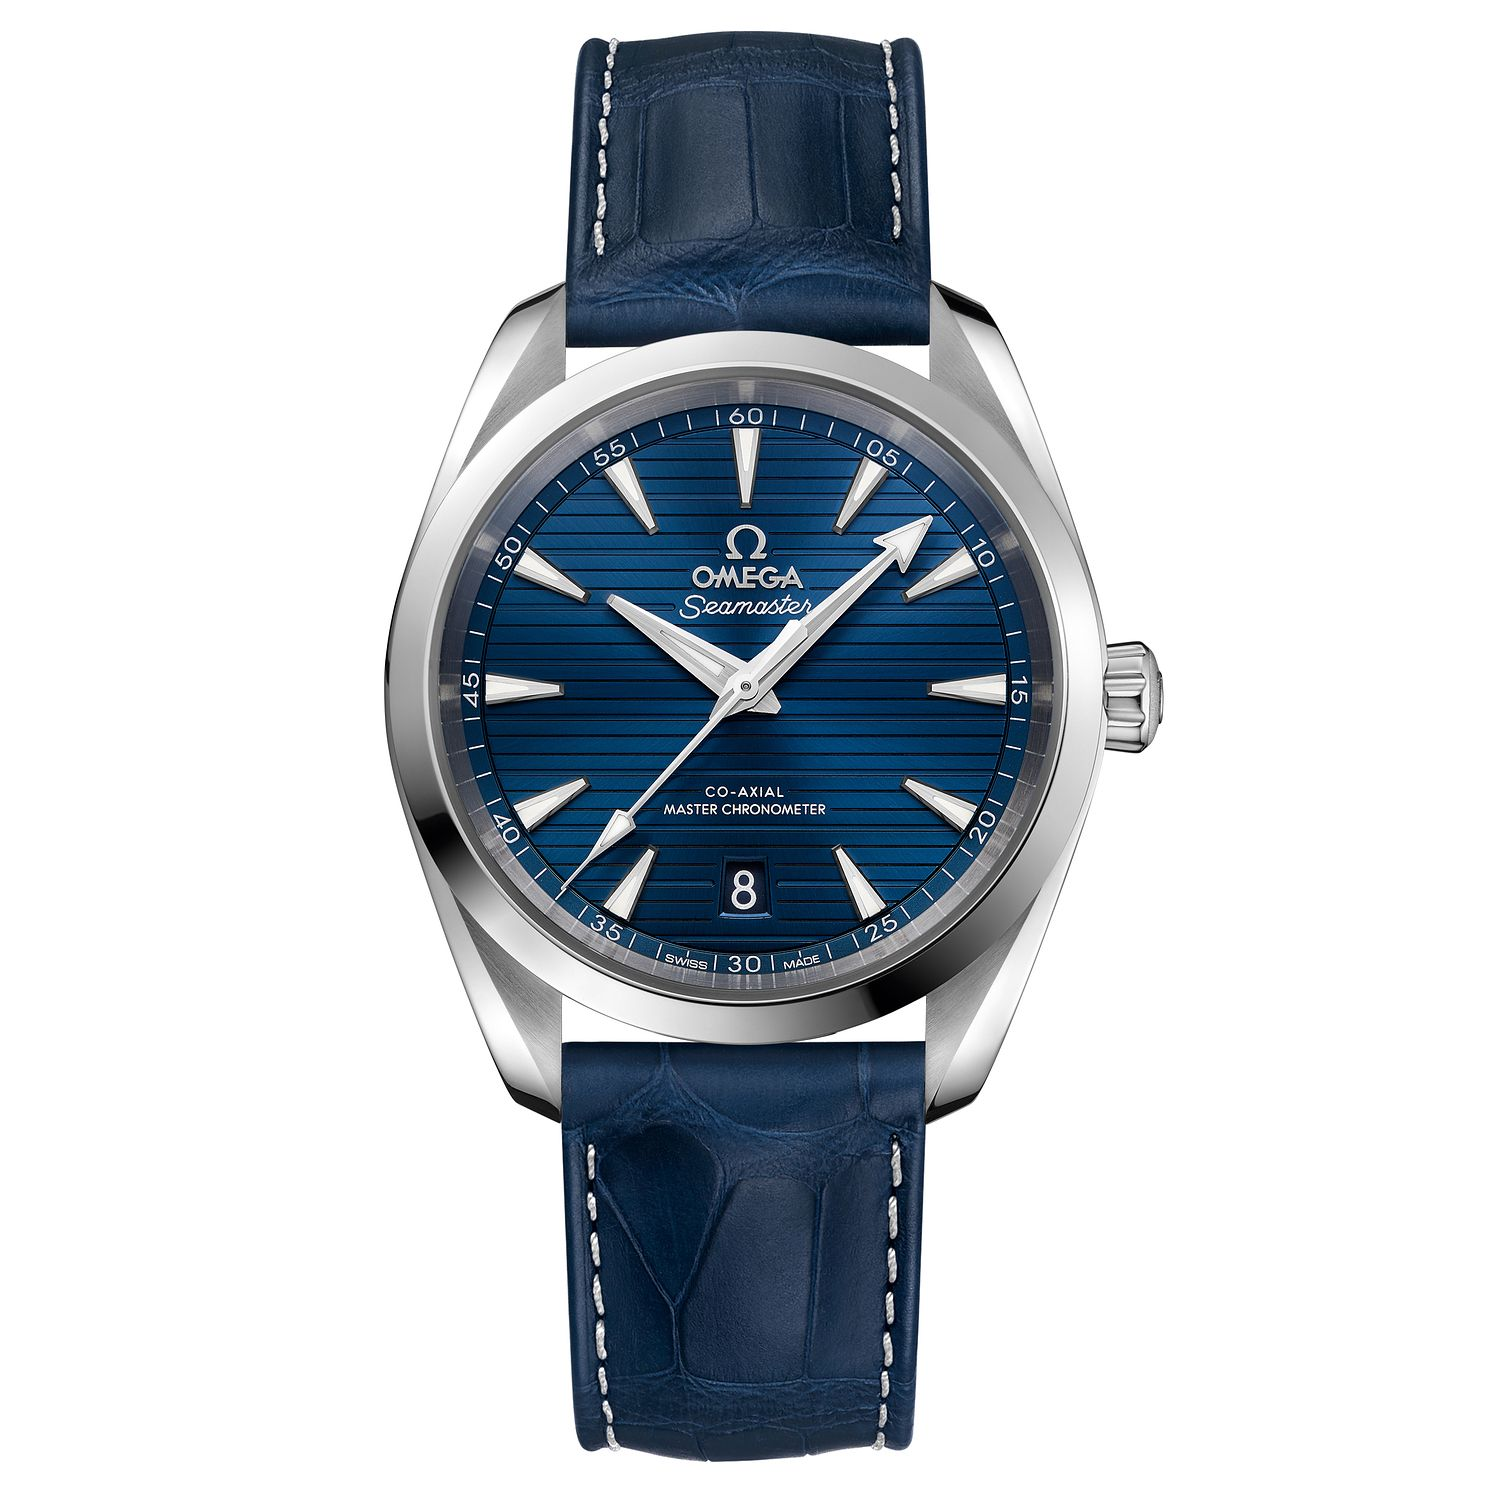 Omega Seamaster Aqua Terra Men's Blue Leather Strap Watch - Product number 6939929